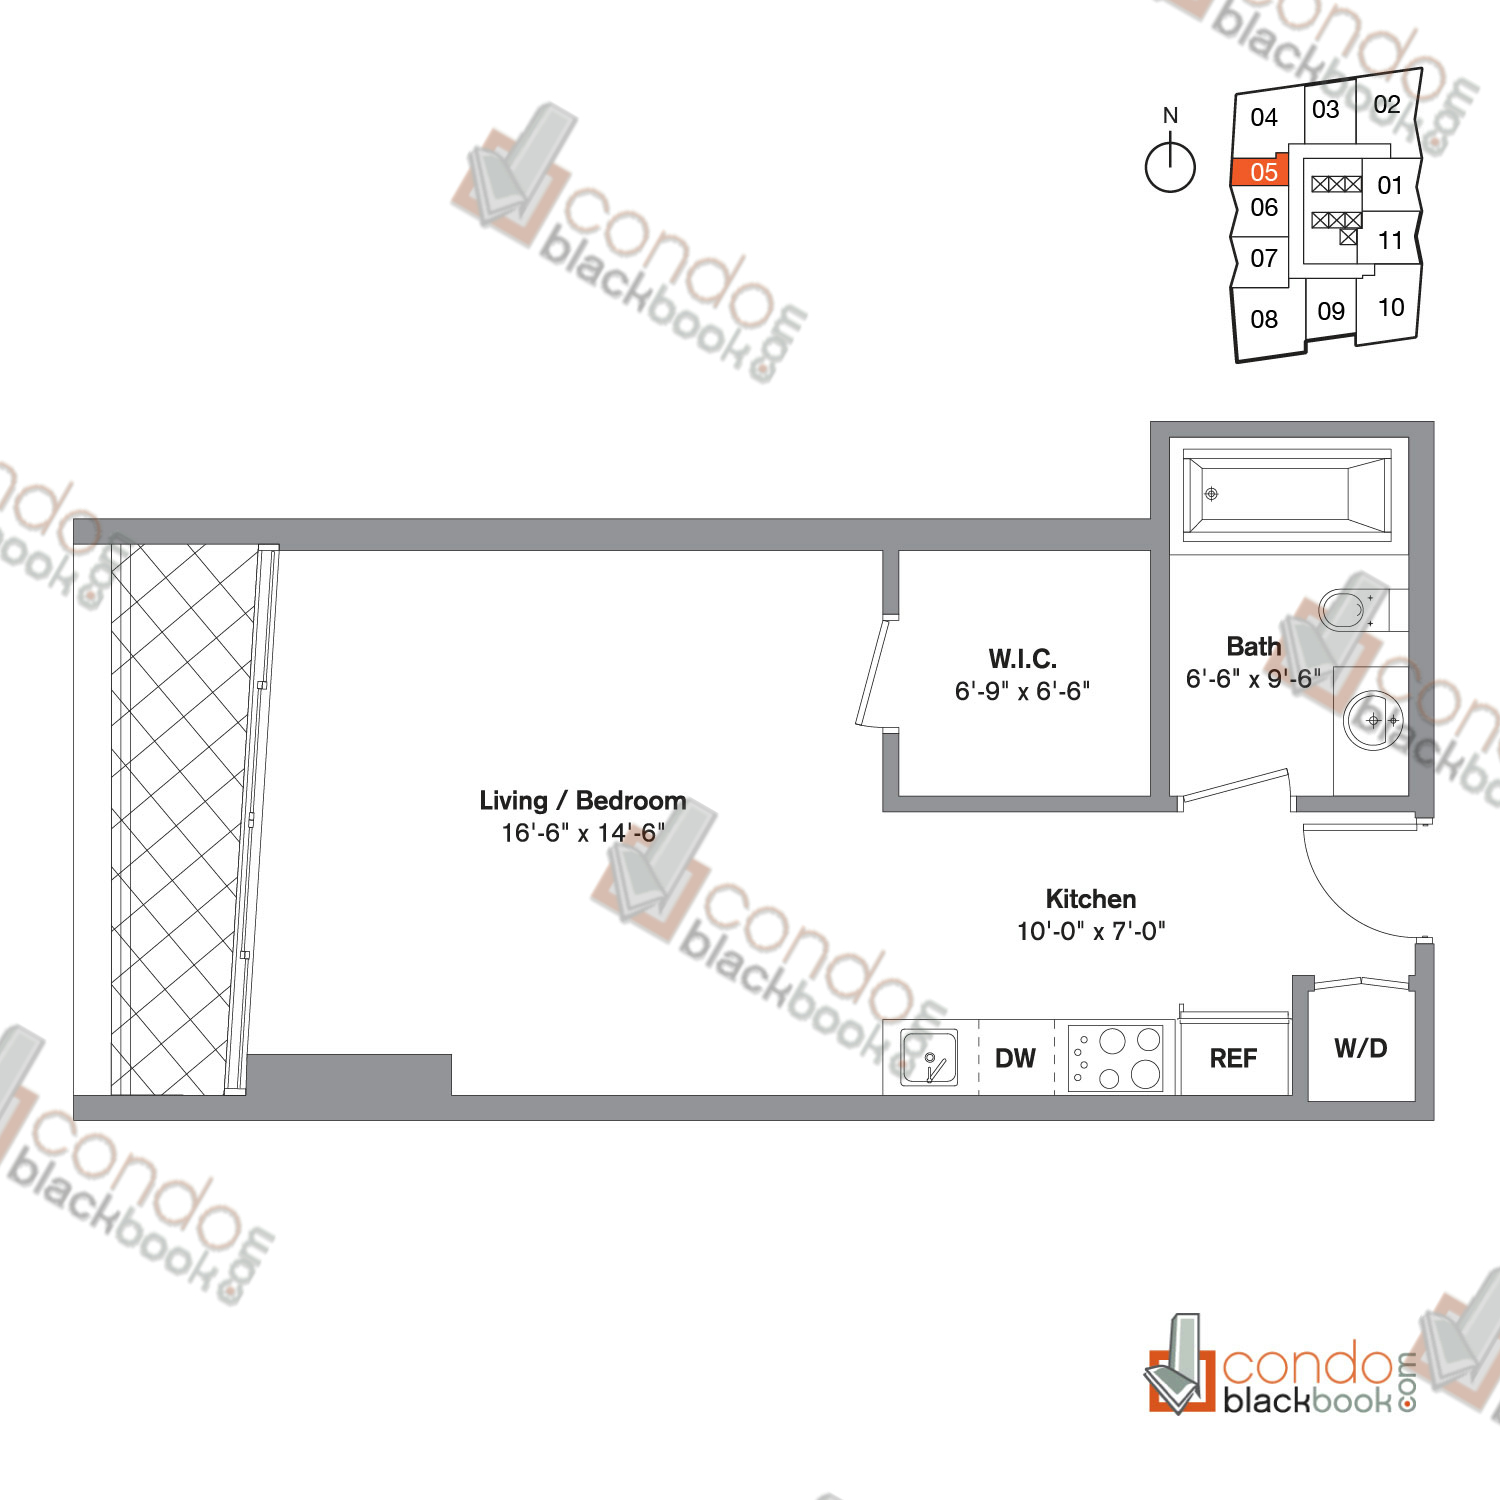 Floor plan for Icon Brickell Viceroy Brickell Miami, model Unit K, line 05, 0/1 bedrooms, 495 sq ft